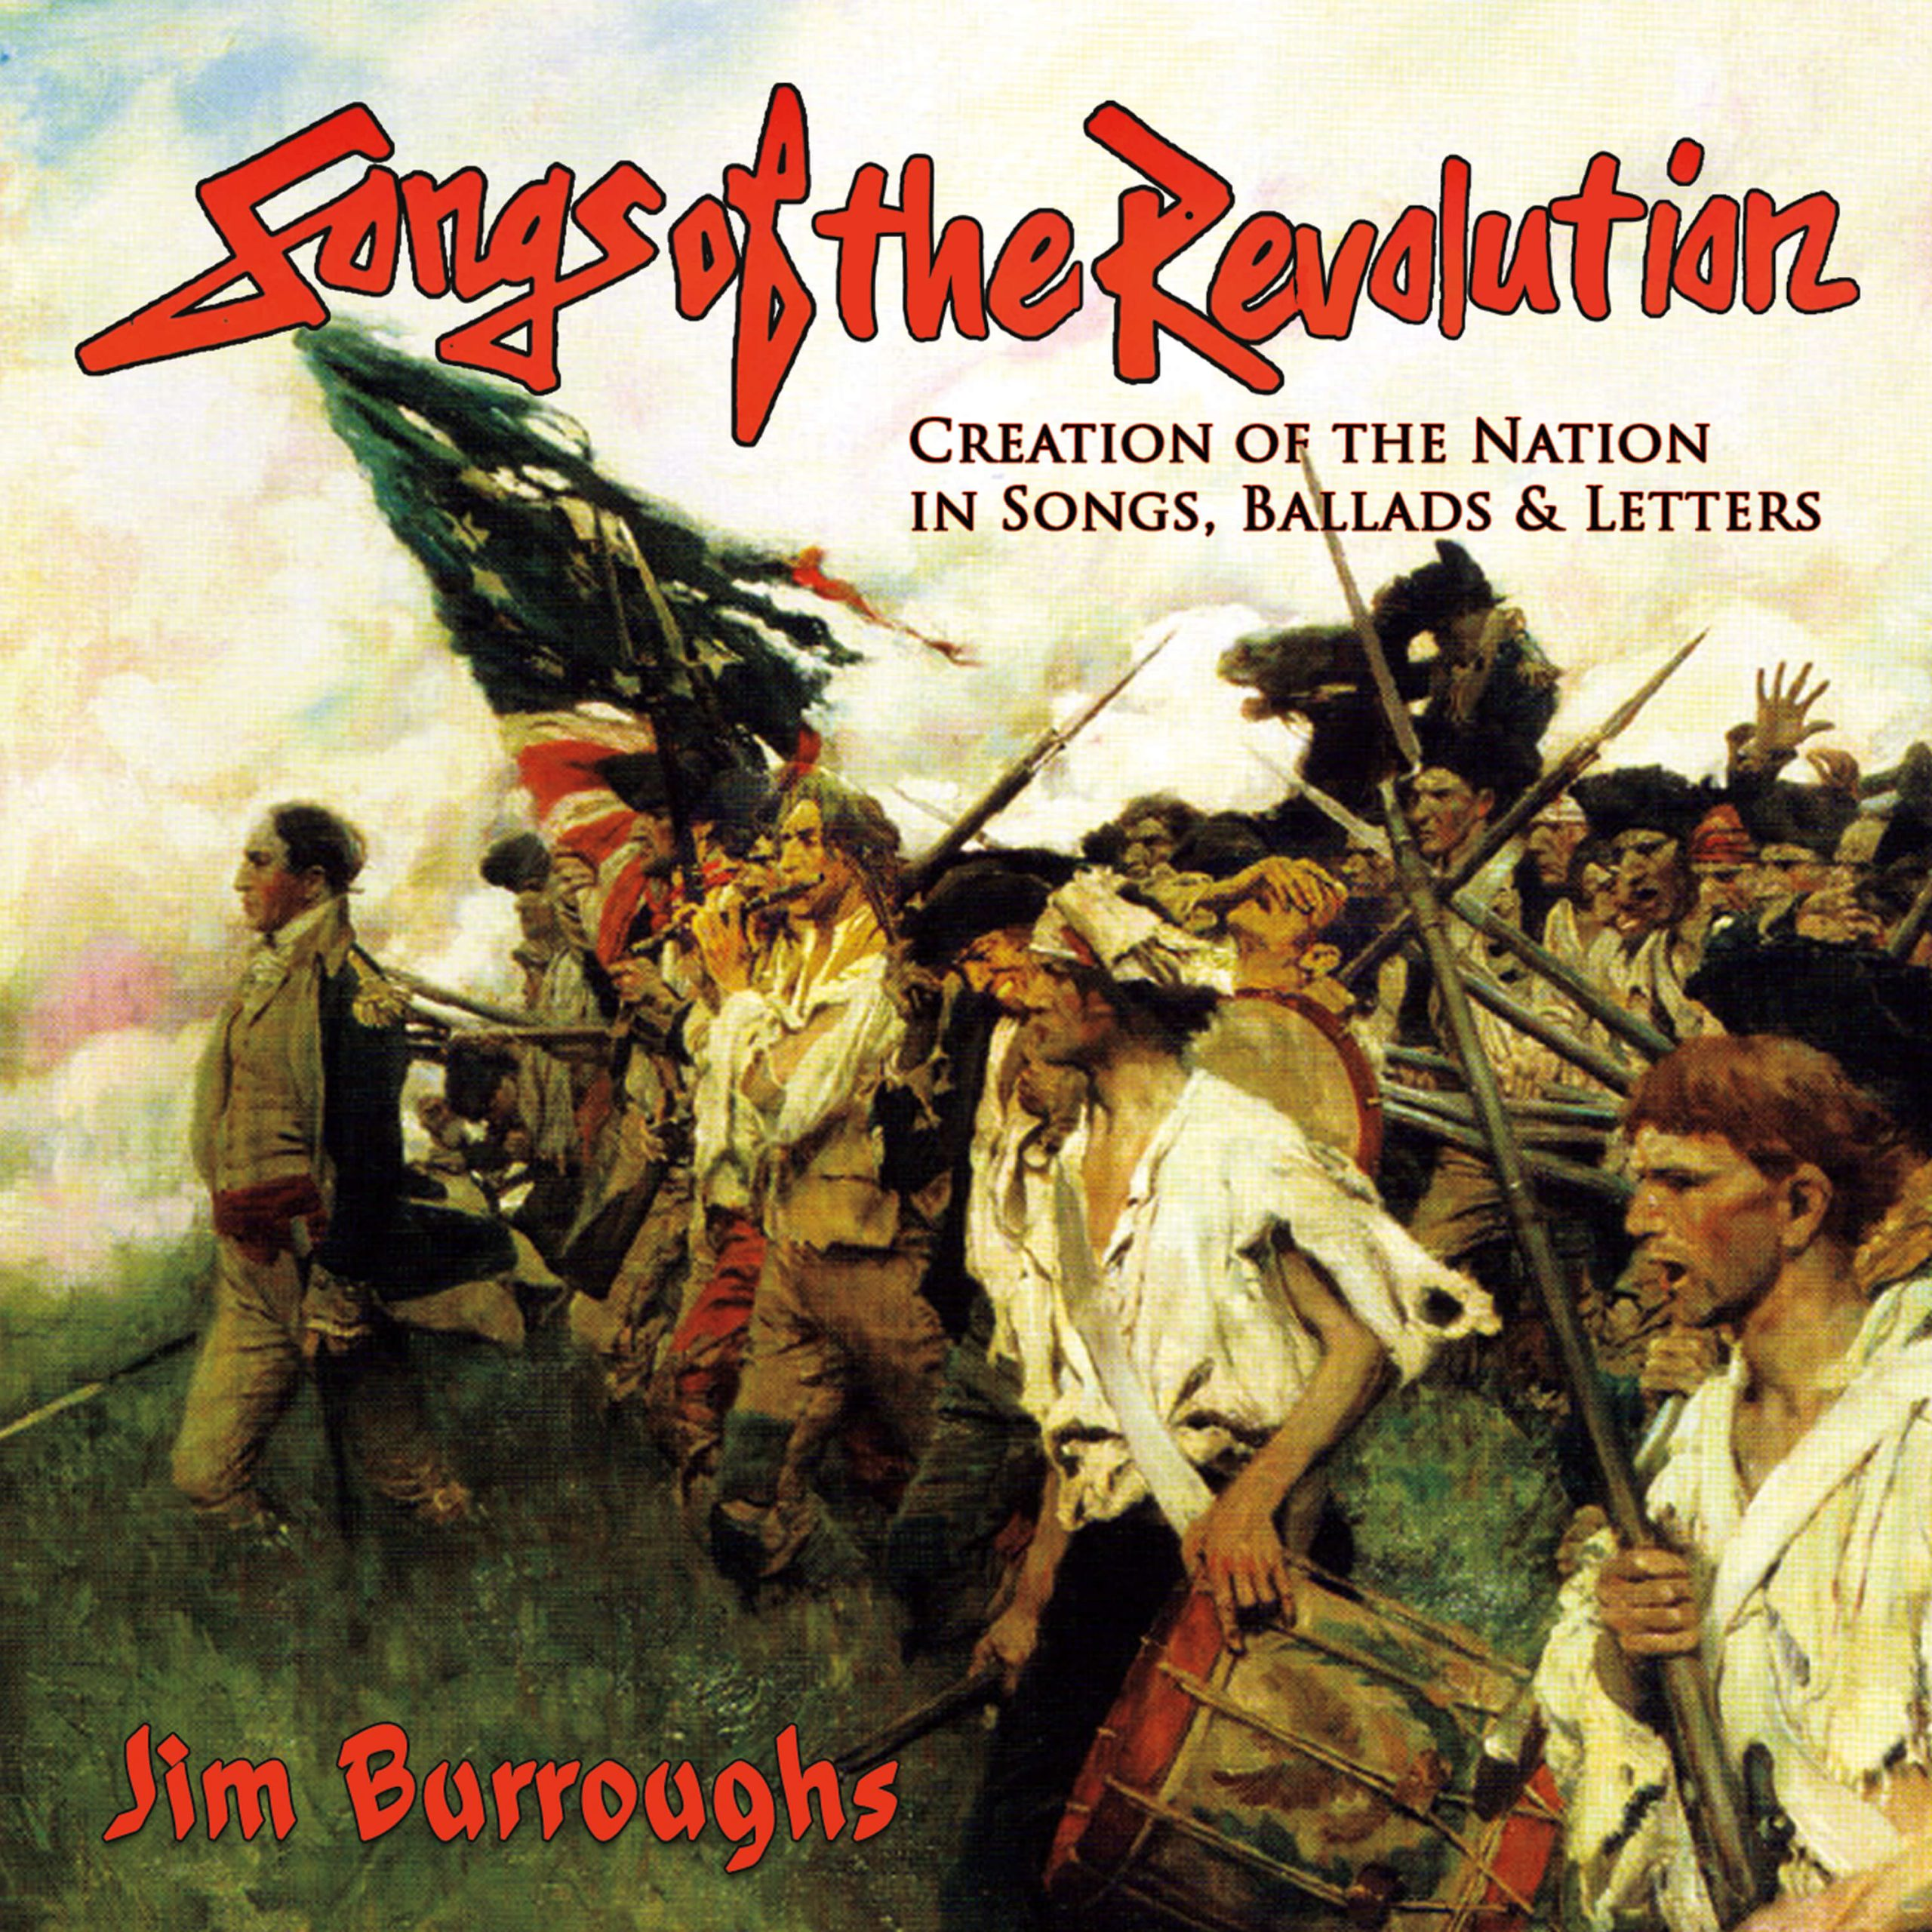 """Jim Burroughs Releases New Album, """"Songs of the Revolution: Creation of the Nation in Songs, Ballads & Letters"""""""